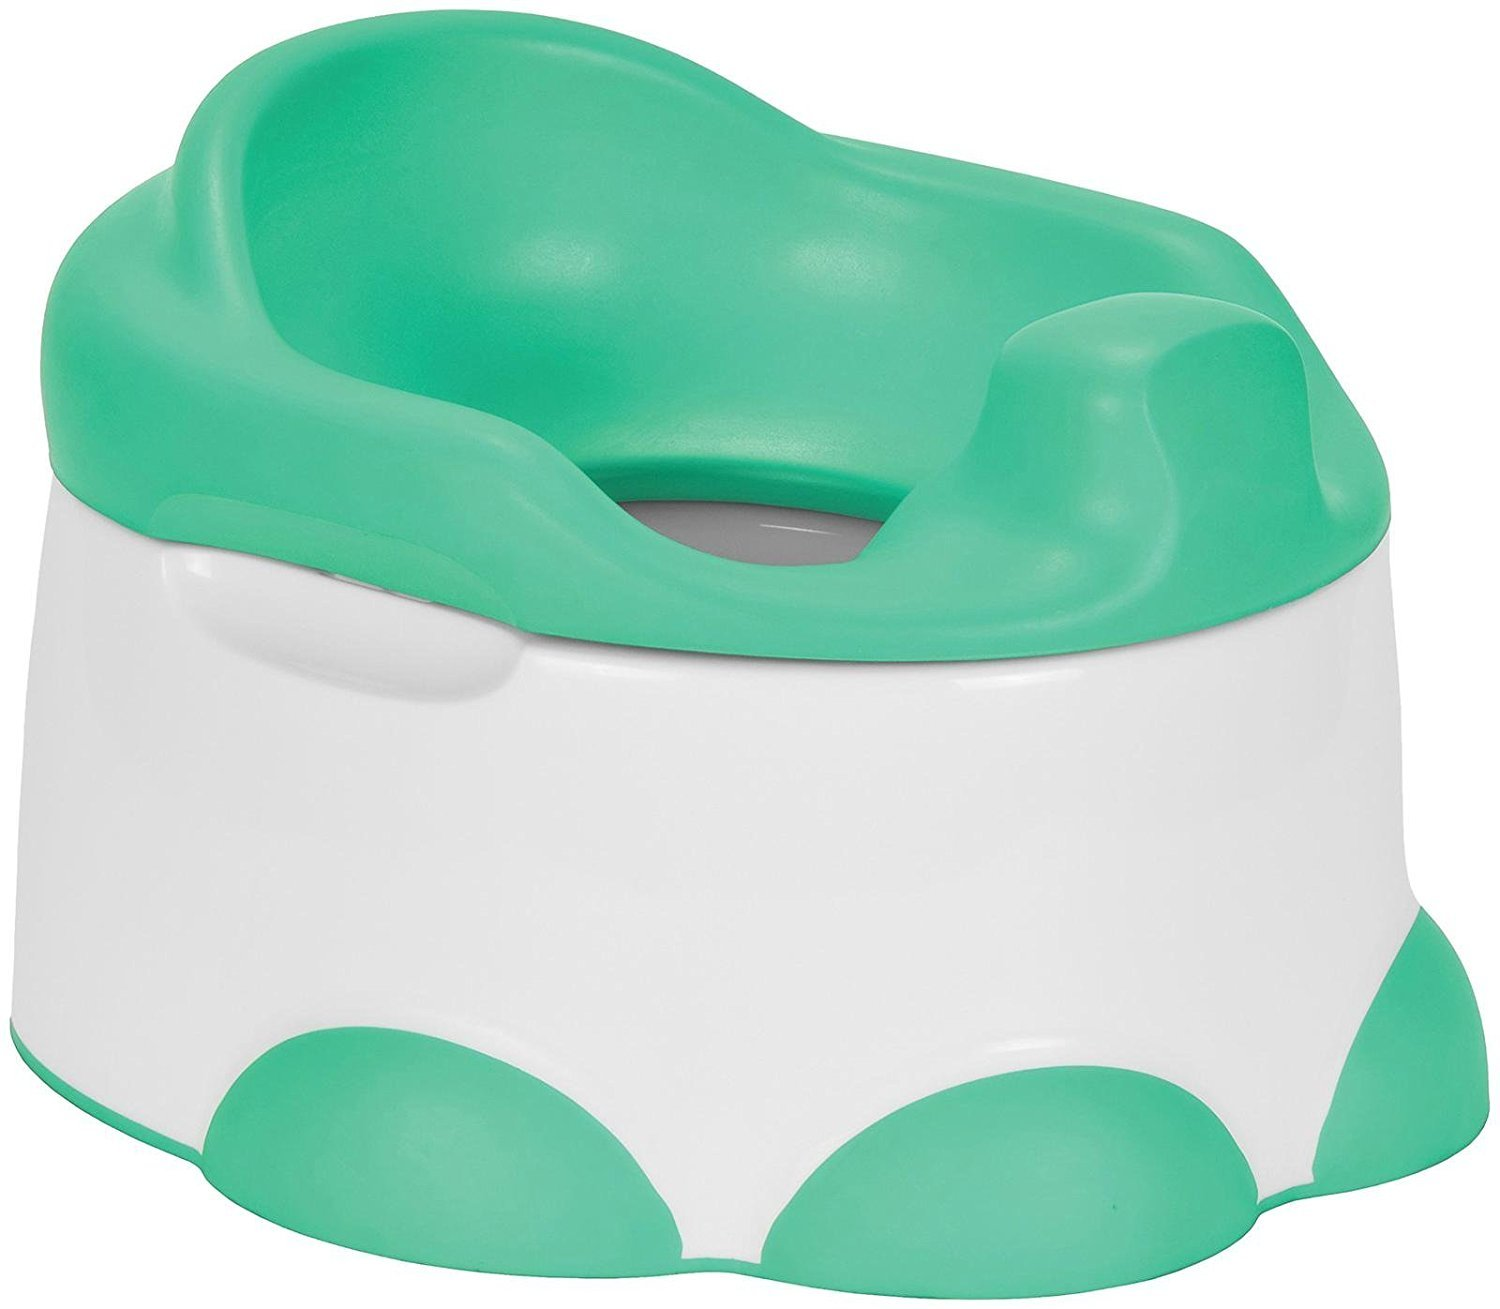 Bumbo Step 'n Potty 3-in-1 Potty Training Toilet - Blue B10402